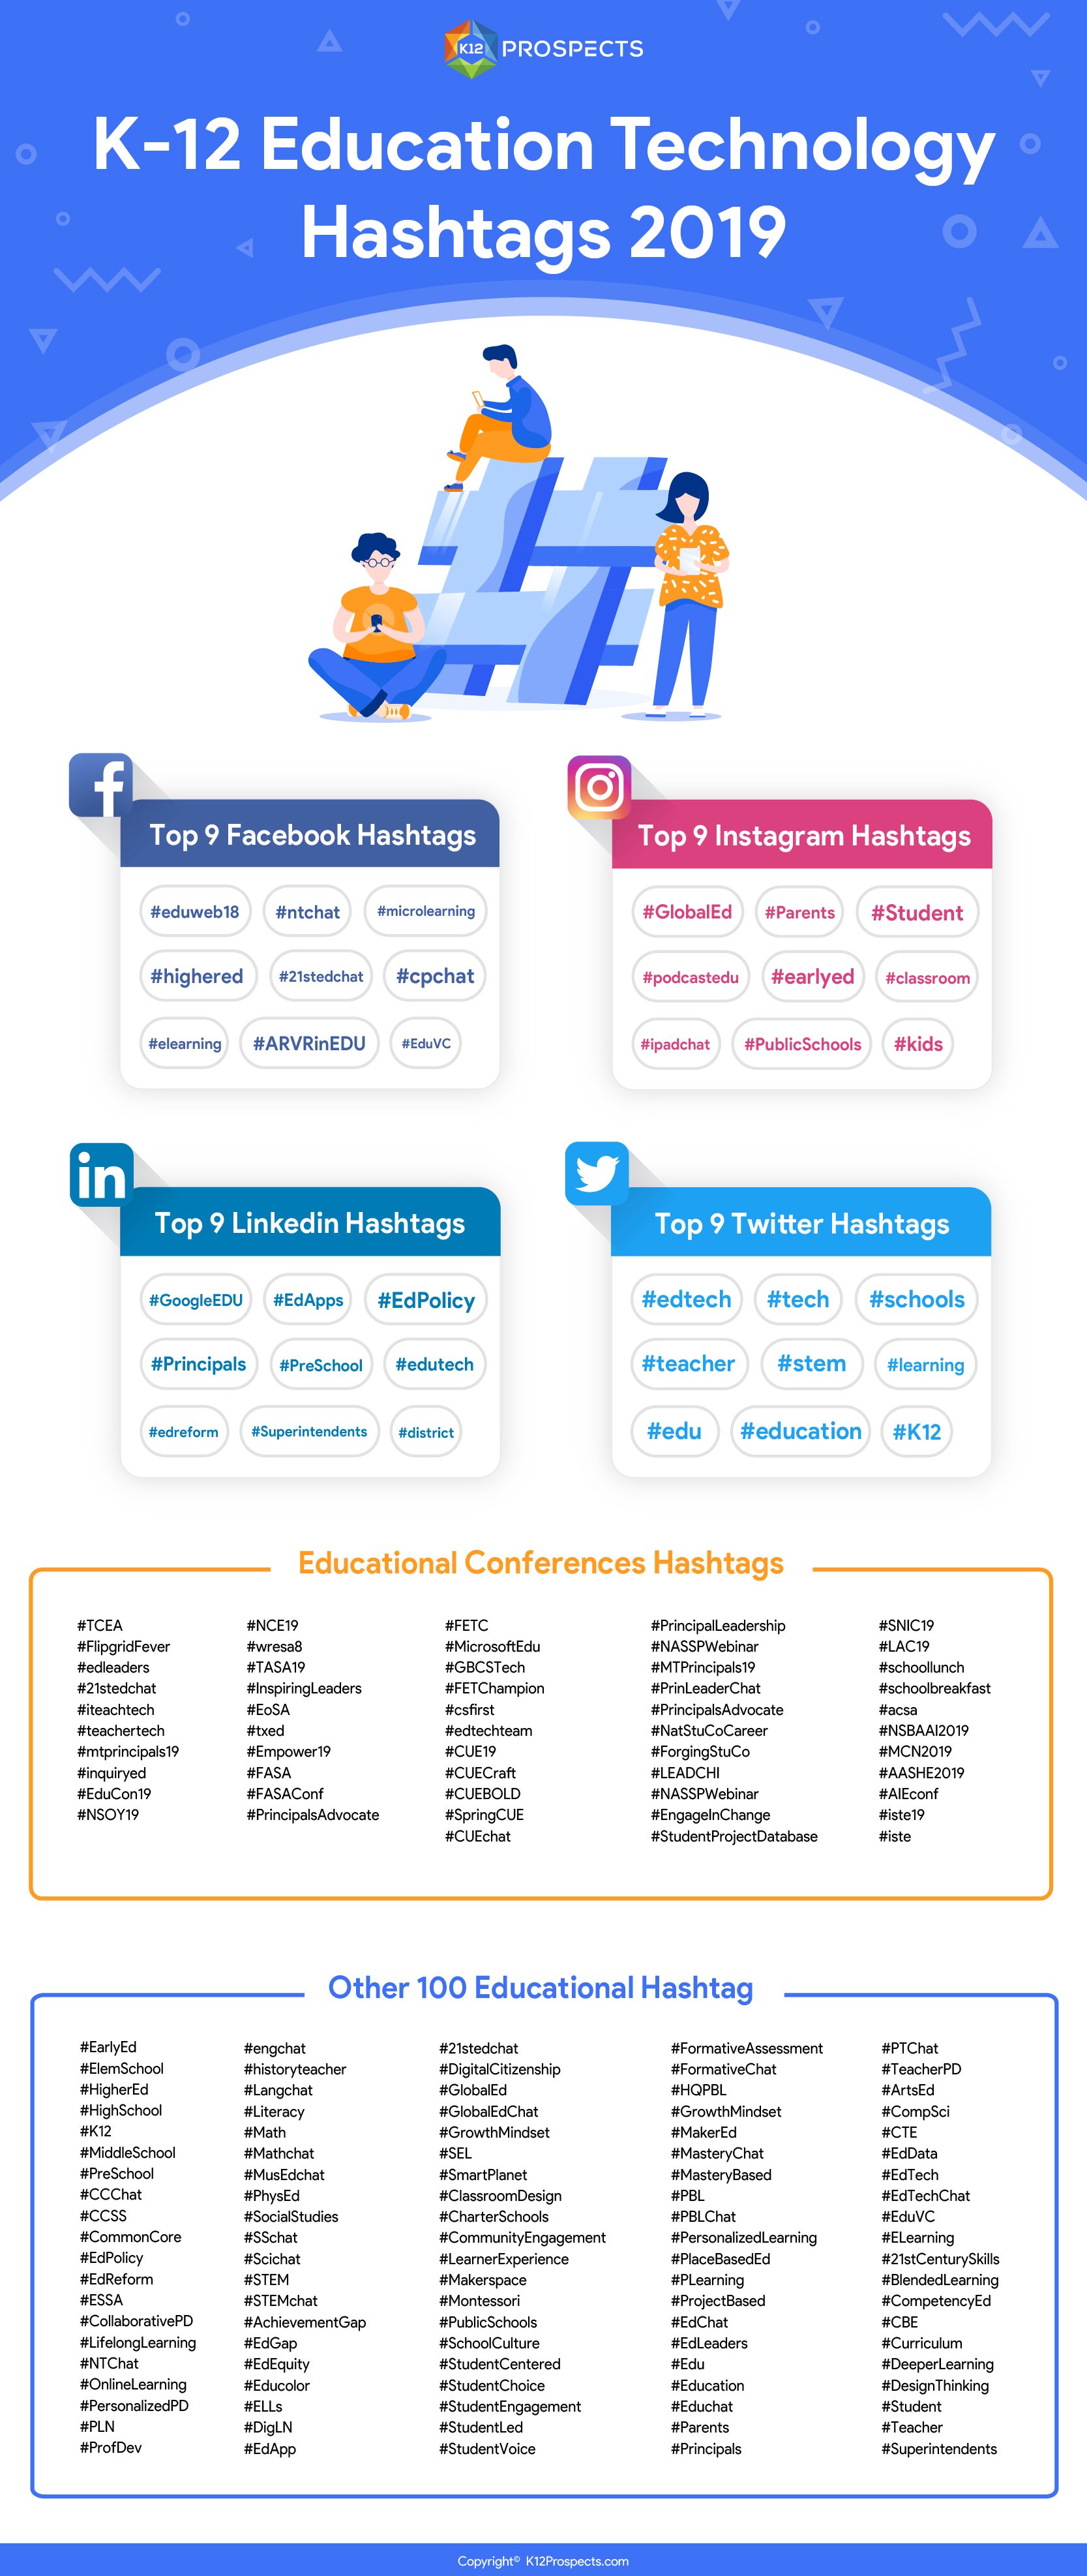 K-12 Education Technology Hashtags 2019